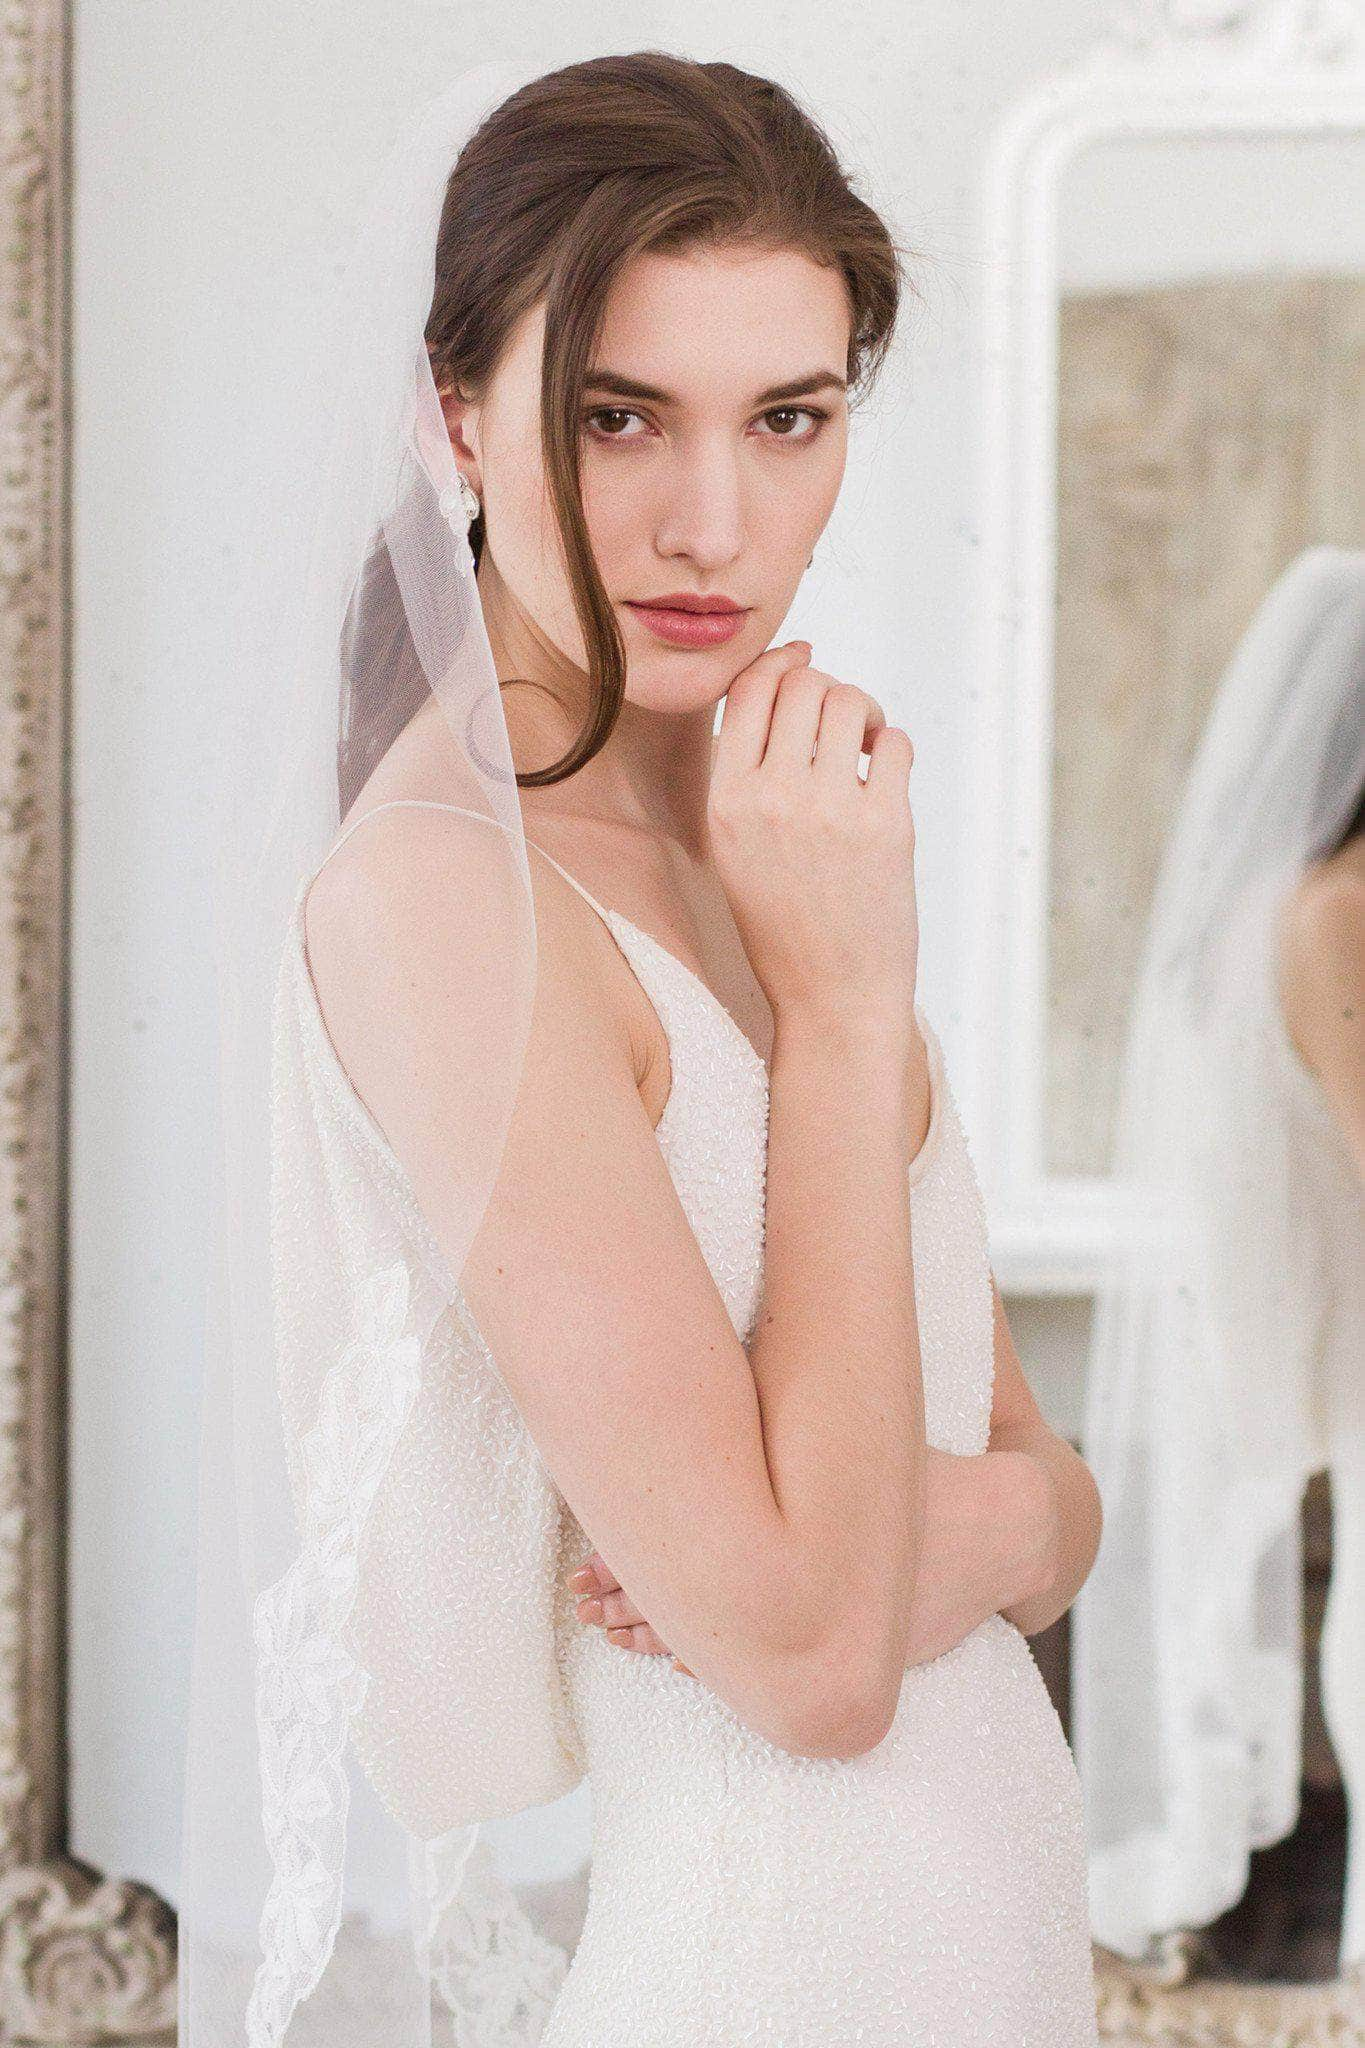 Wedding Veil Off white Fingertip length semi lace edged wedding veil - 'Calleva'